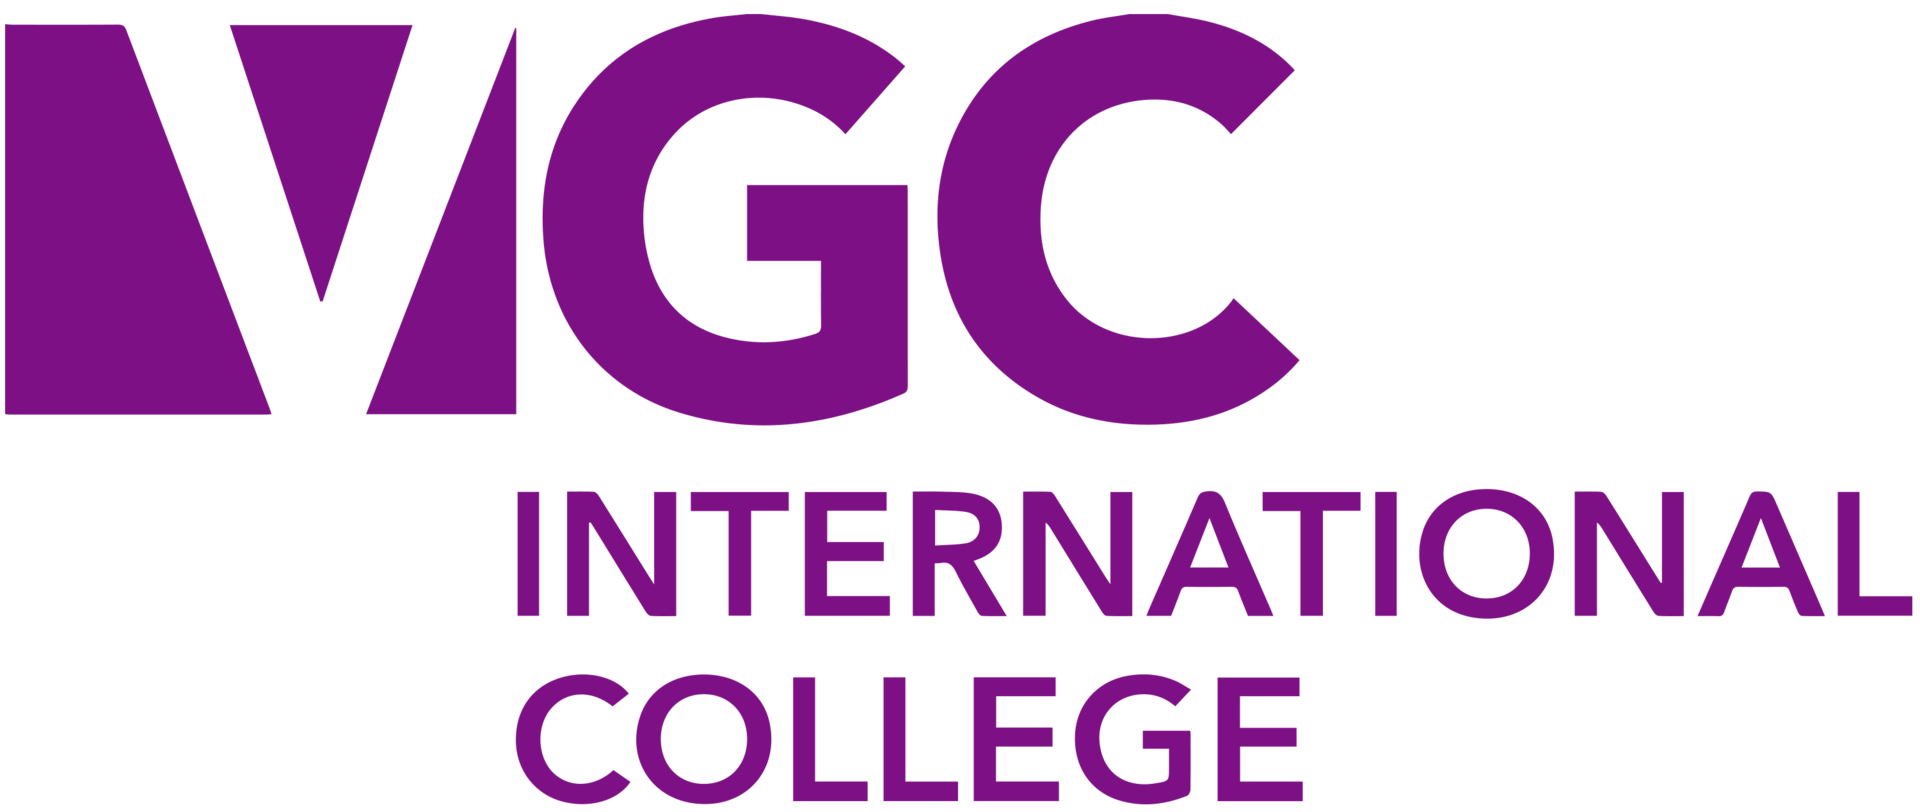 vgc-international-college-logo_purple_rgb